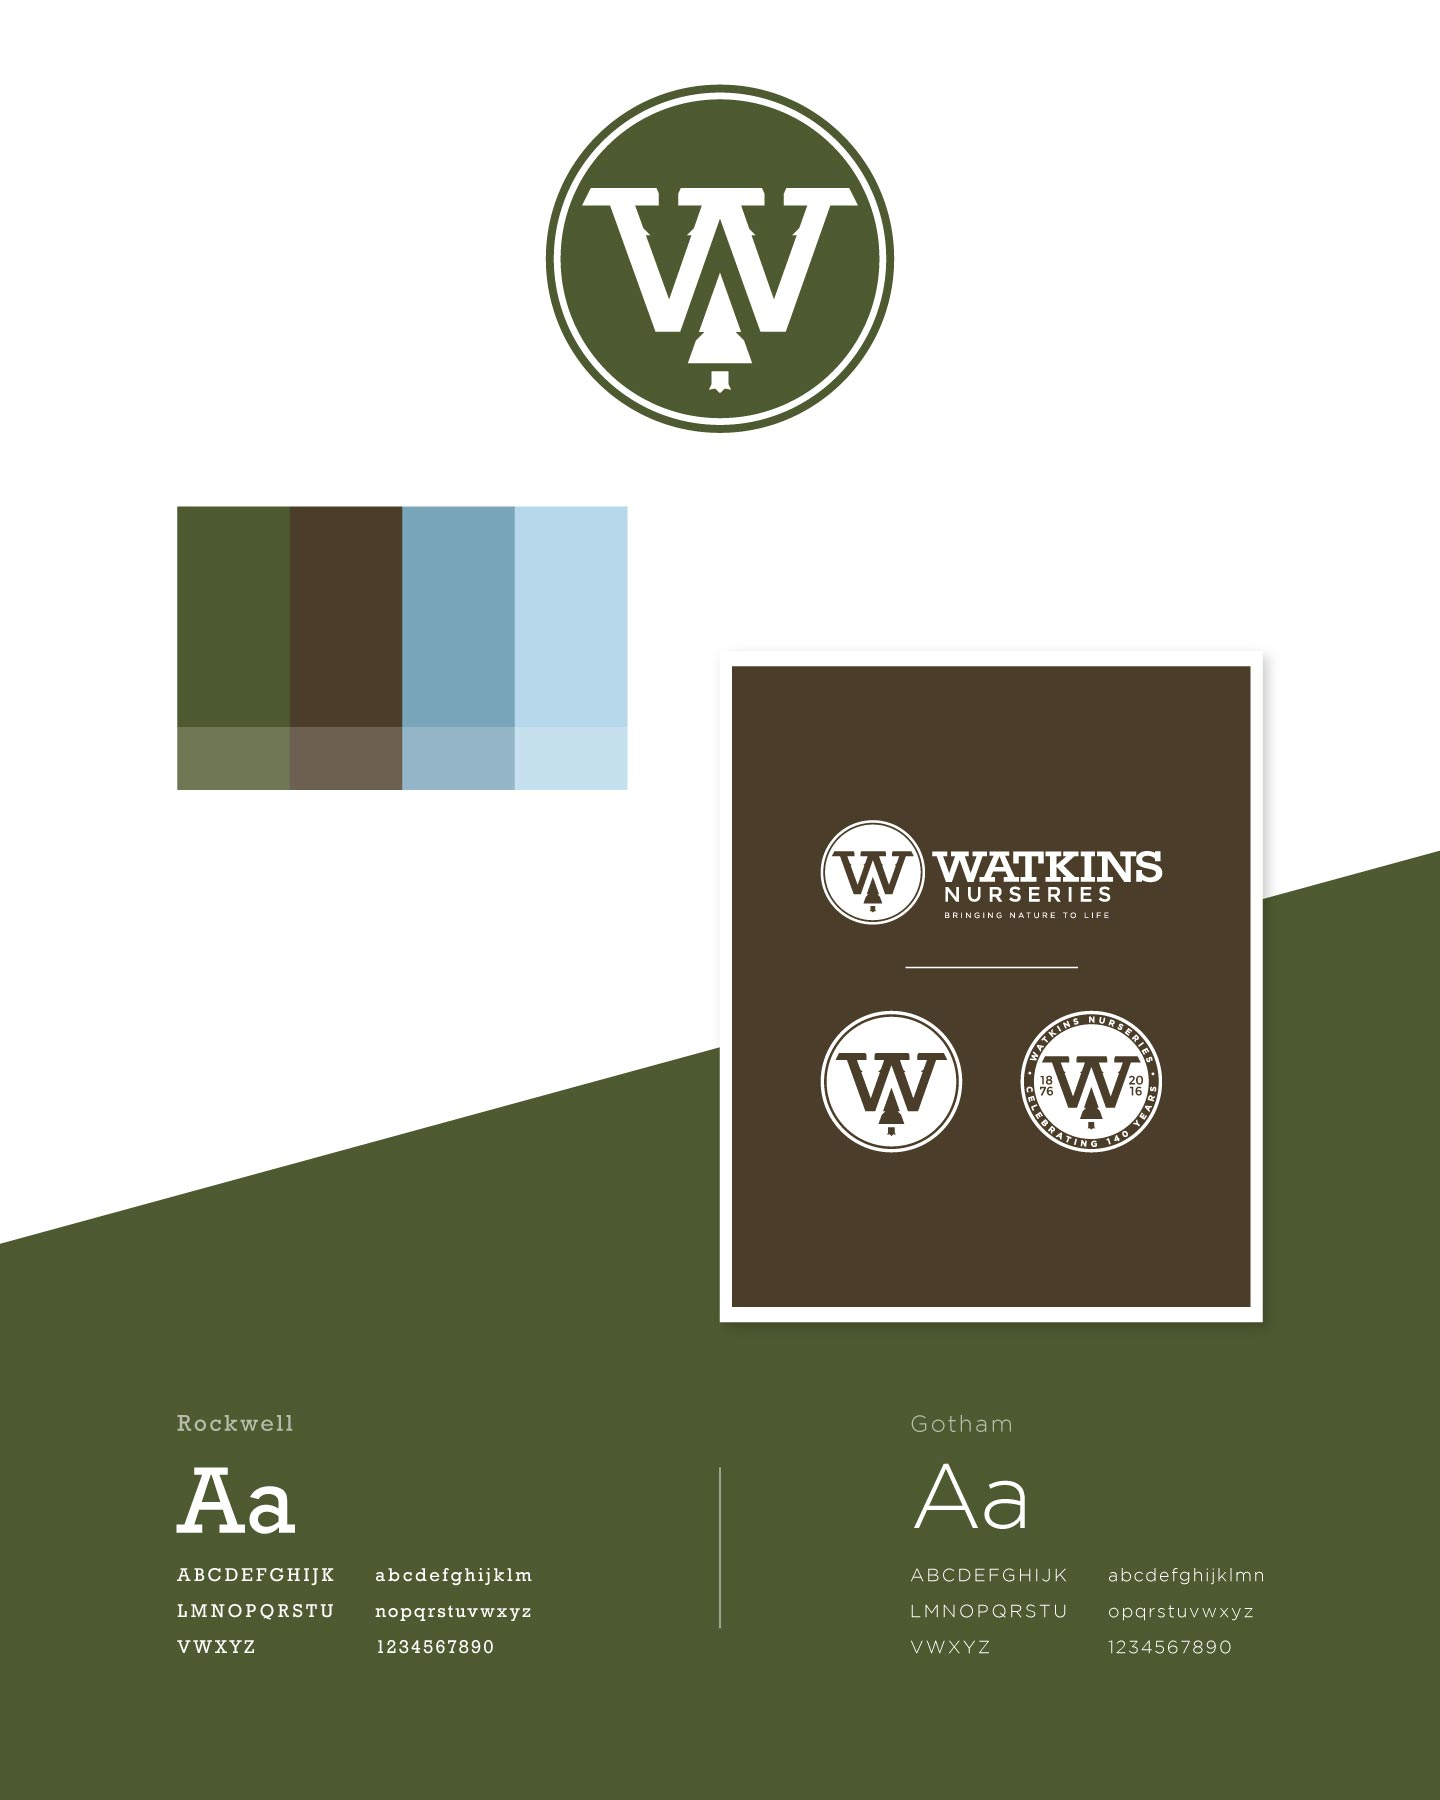 Logo, colors, and fonts for Watkins Nurseries